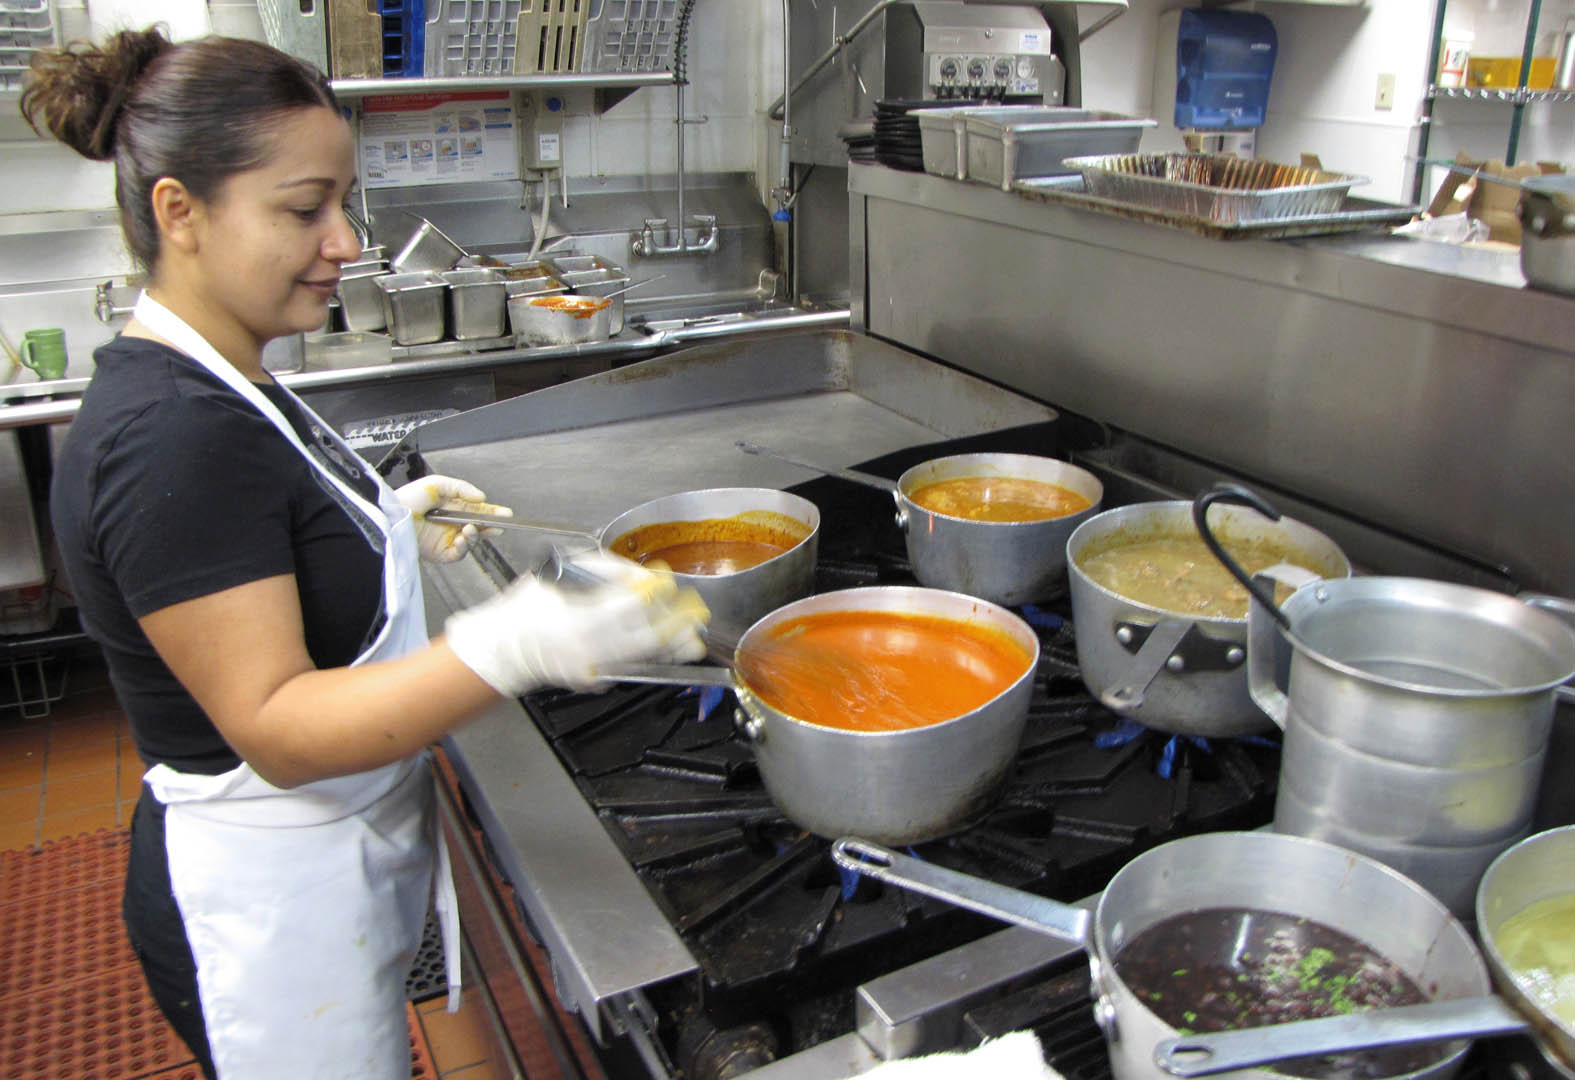 Dining profile: La Hacienda in MH looking to duplicate Gilroy restaurant's success